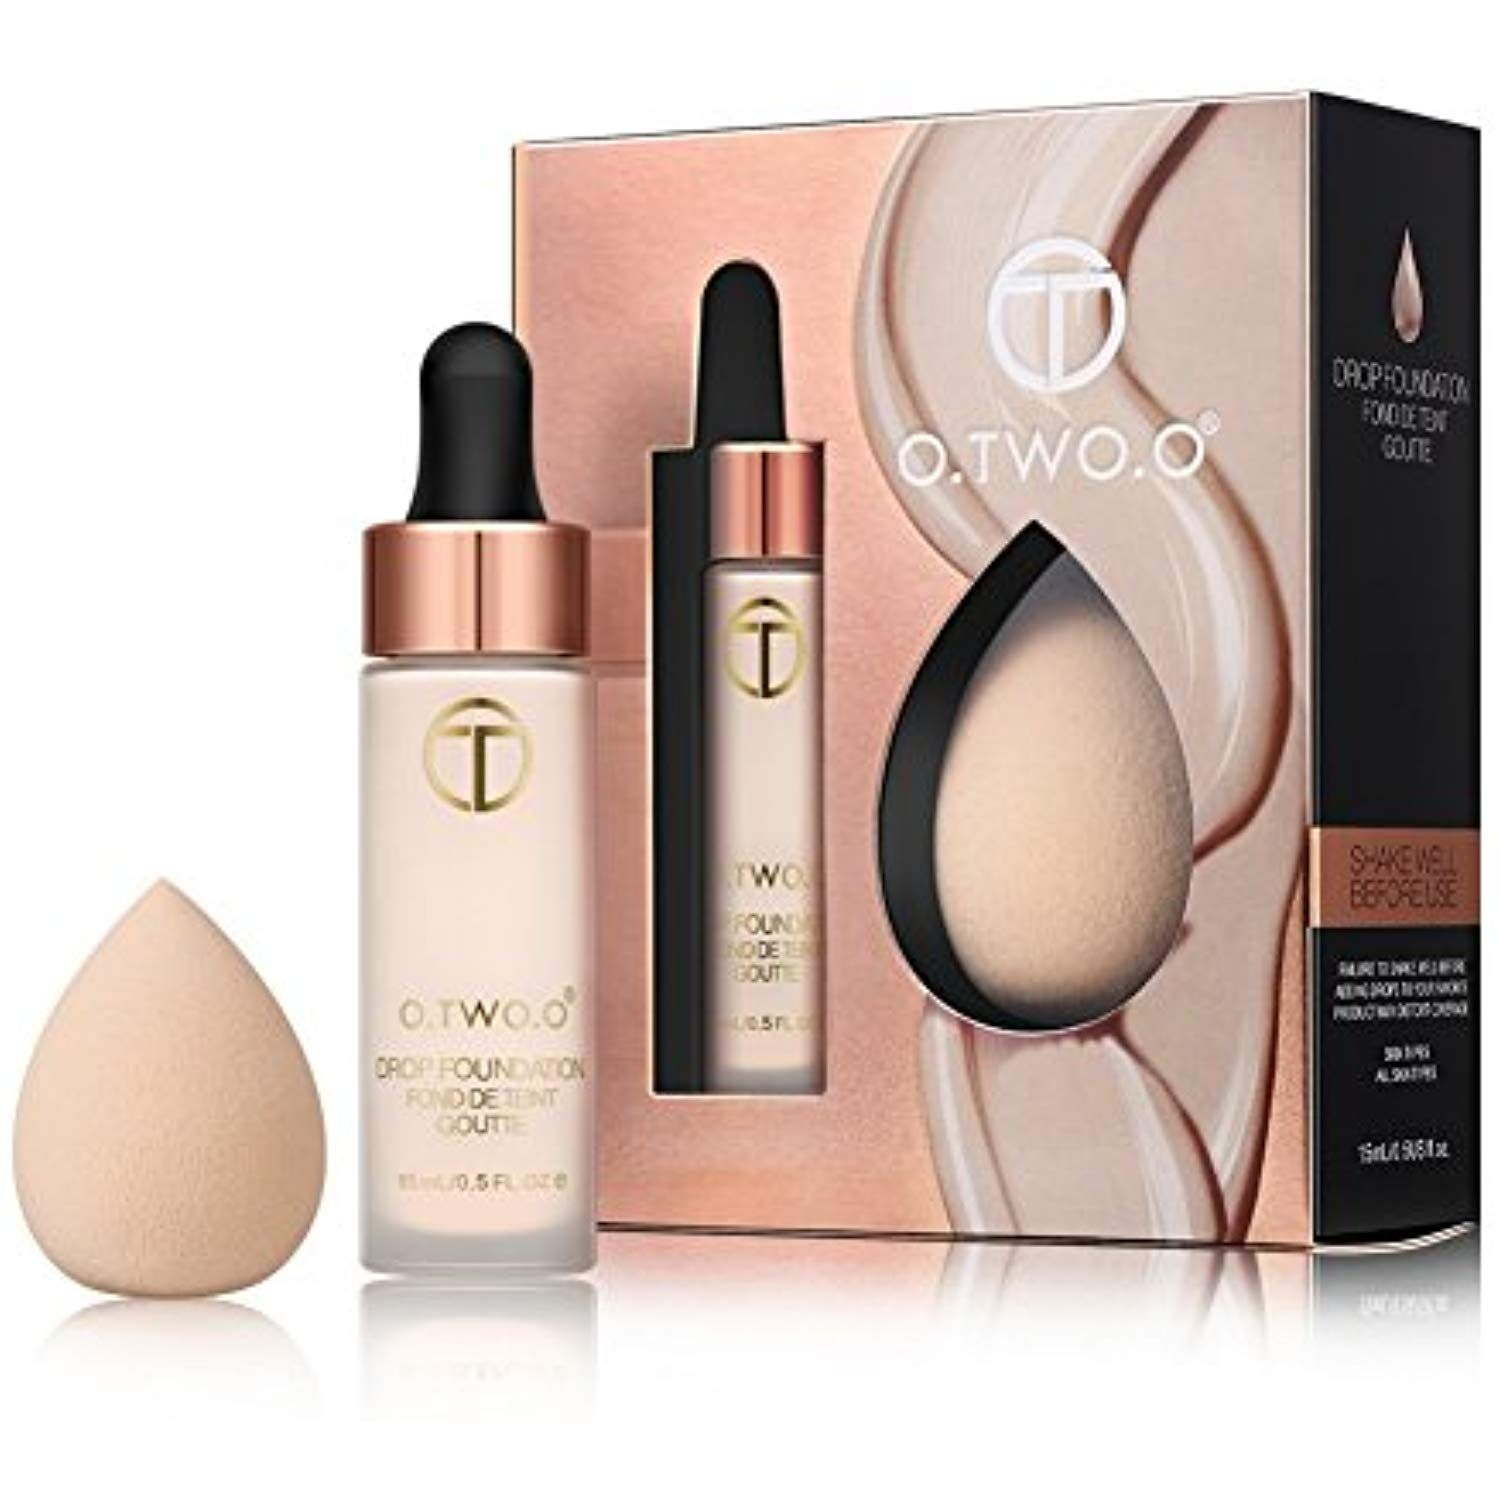 Pin By Ana On Justice Makeup No Foundation Makeup It Cosmetics Foundation Waterproof Concealer